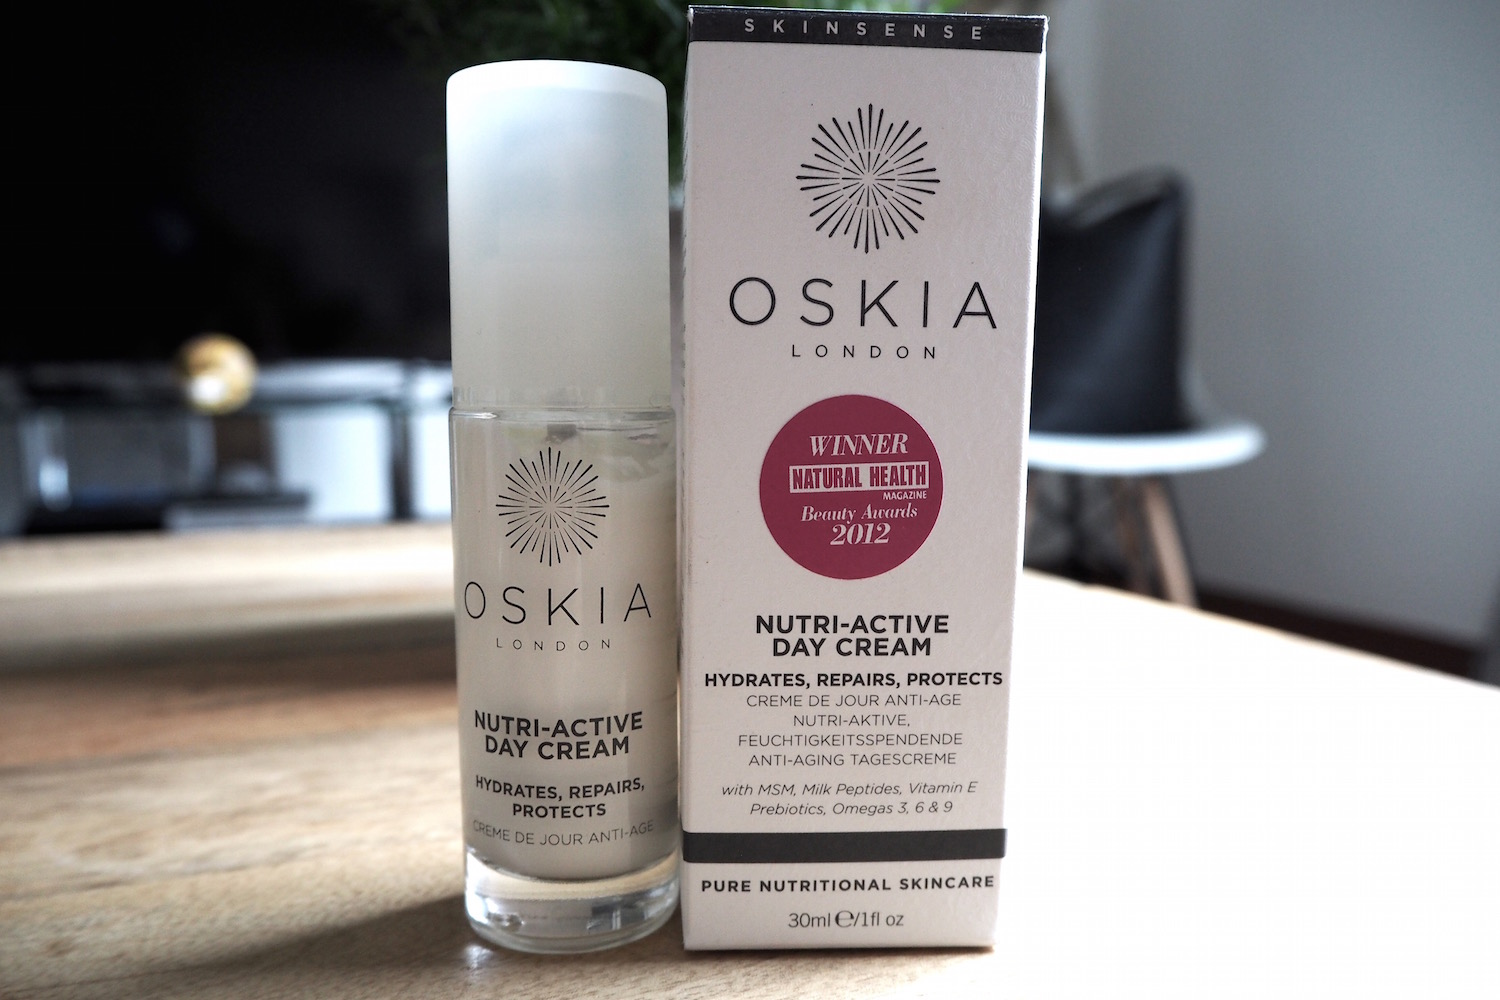 Beauty Review: Oskia Nutri-Active Day Cream